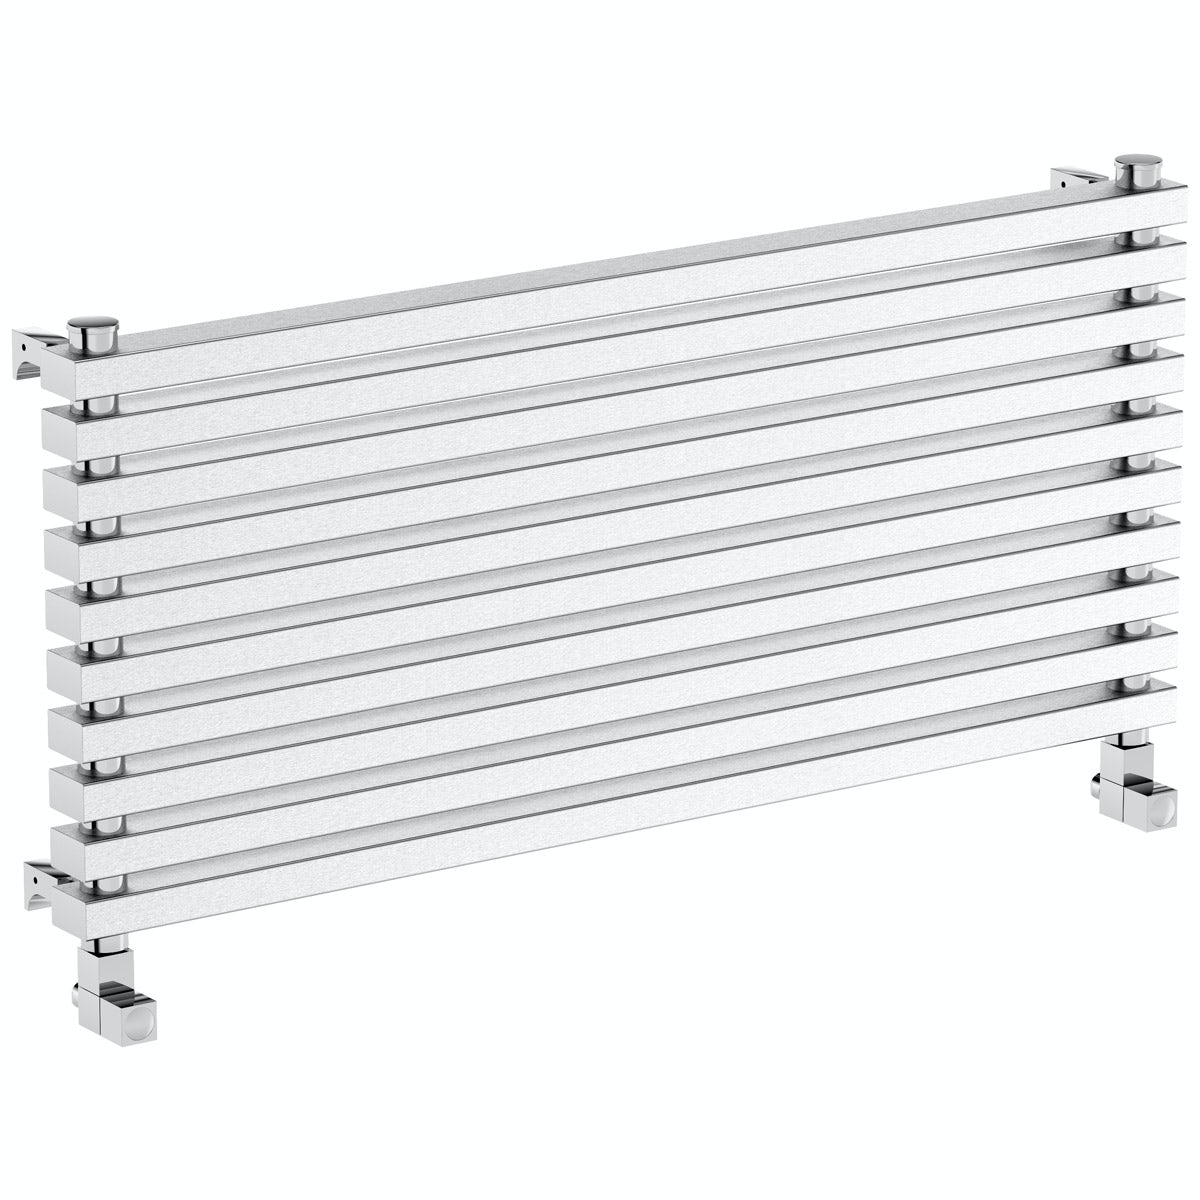 Mode Cadence horizontal radiator 465 x 1000